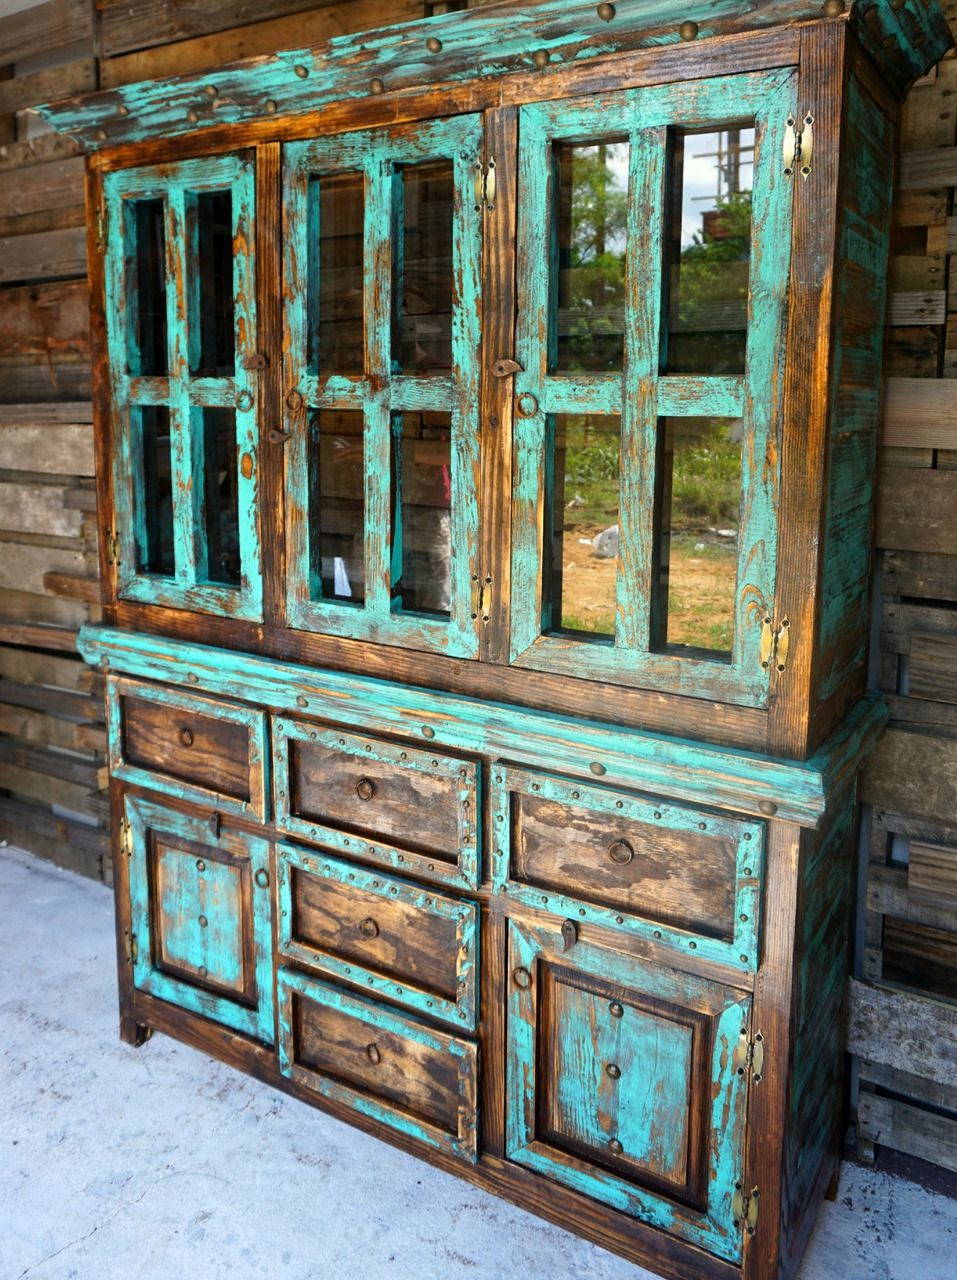 Merveilleux San Antonio Rustic Hutch   Sofiau0027s Rustic Furniture   A Perfect Piece For A  Ranch, Log Cabin, Or Any Western Home.